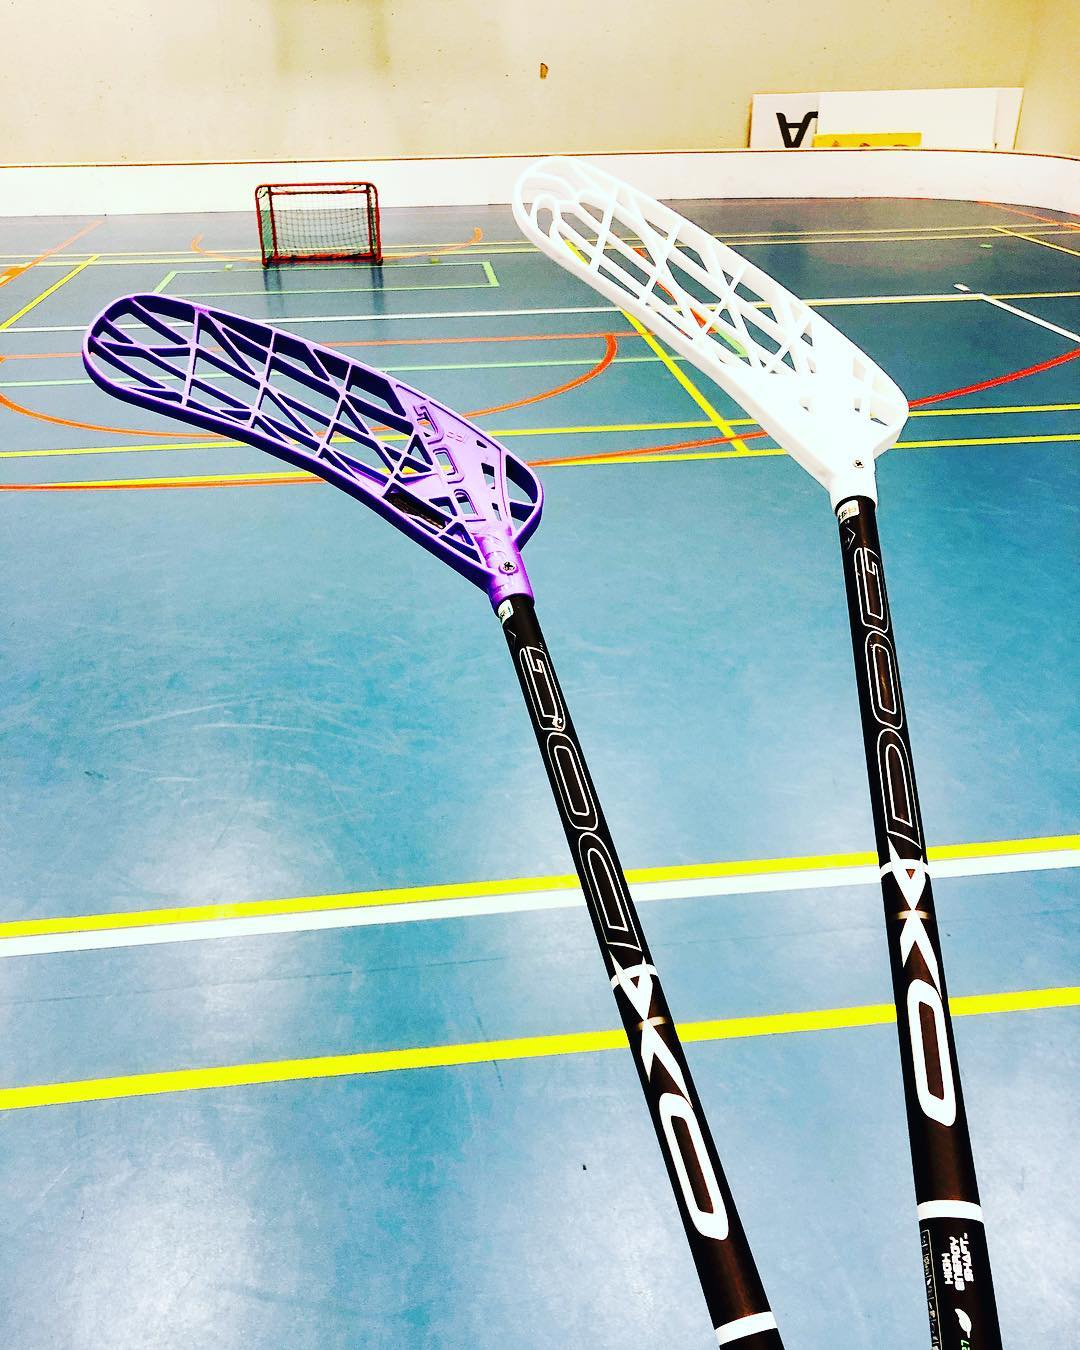 Floorballsticks